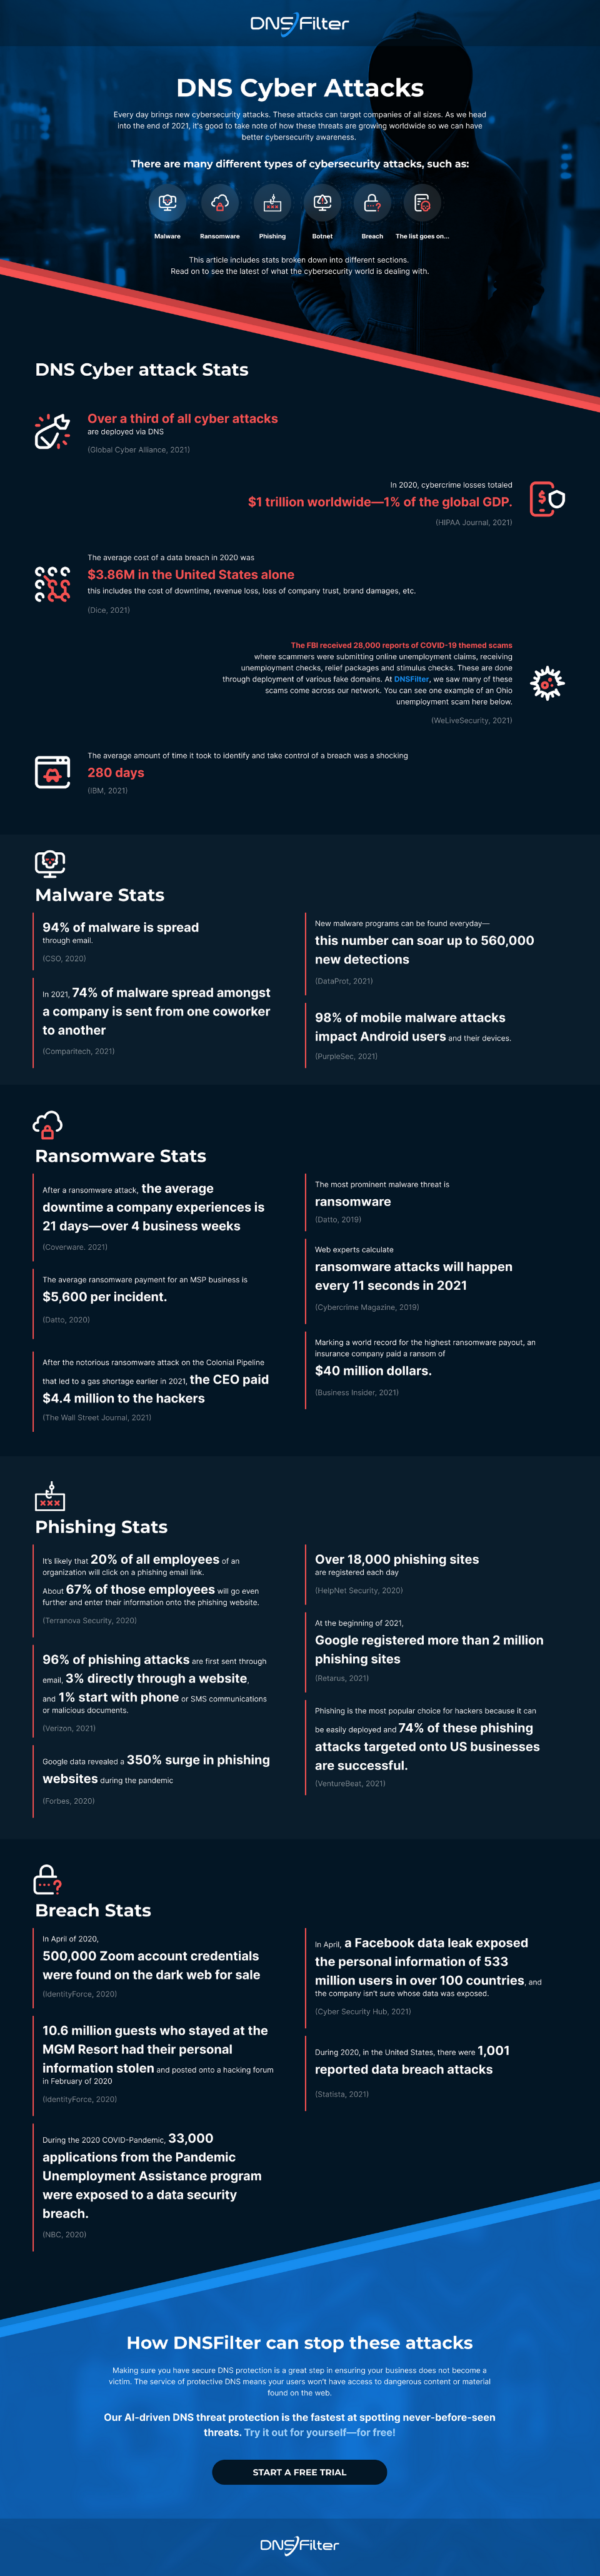 DNS cyber attack stats infographic malware breach phishing ransomware